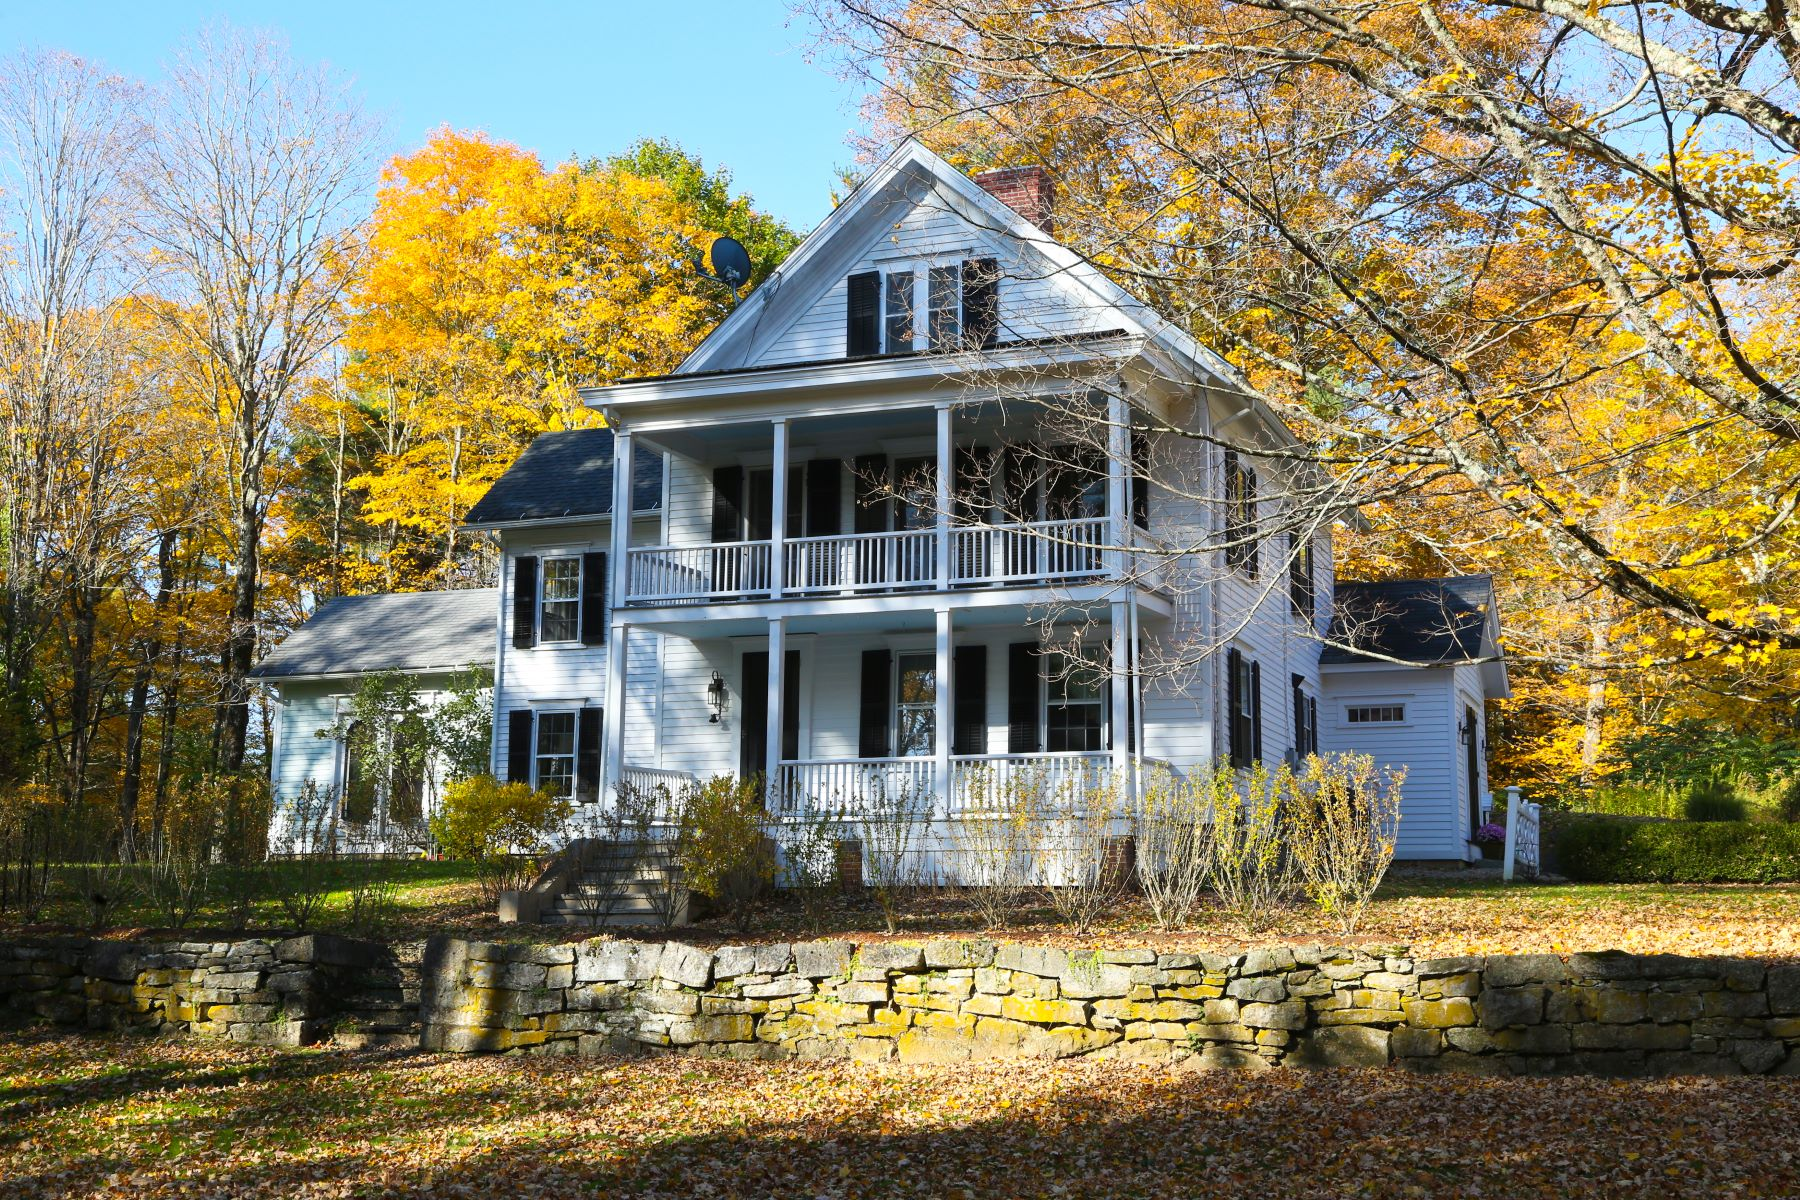 Single Family Homes for Sale at 1870 Meets 2019 272 Taconic Road Salisbury, Connecticut 06068 United States